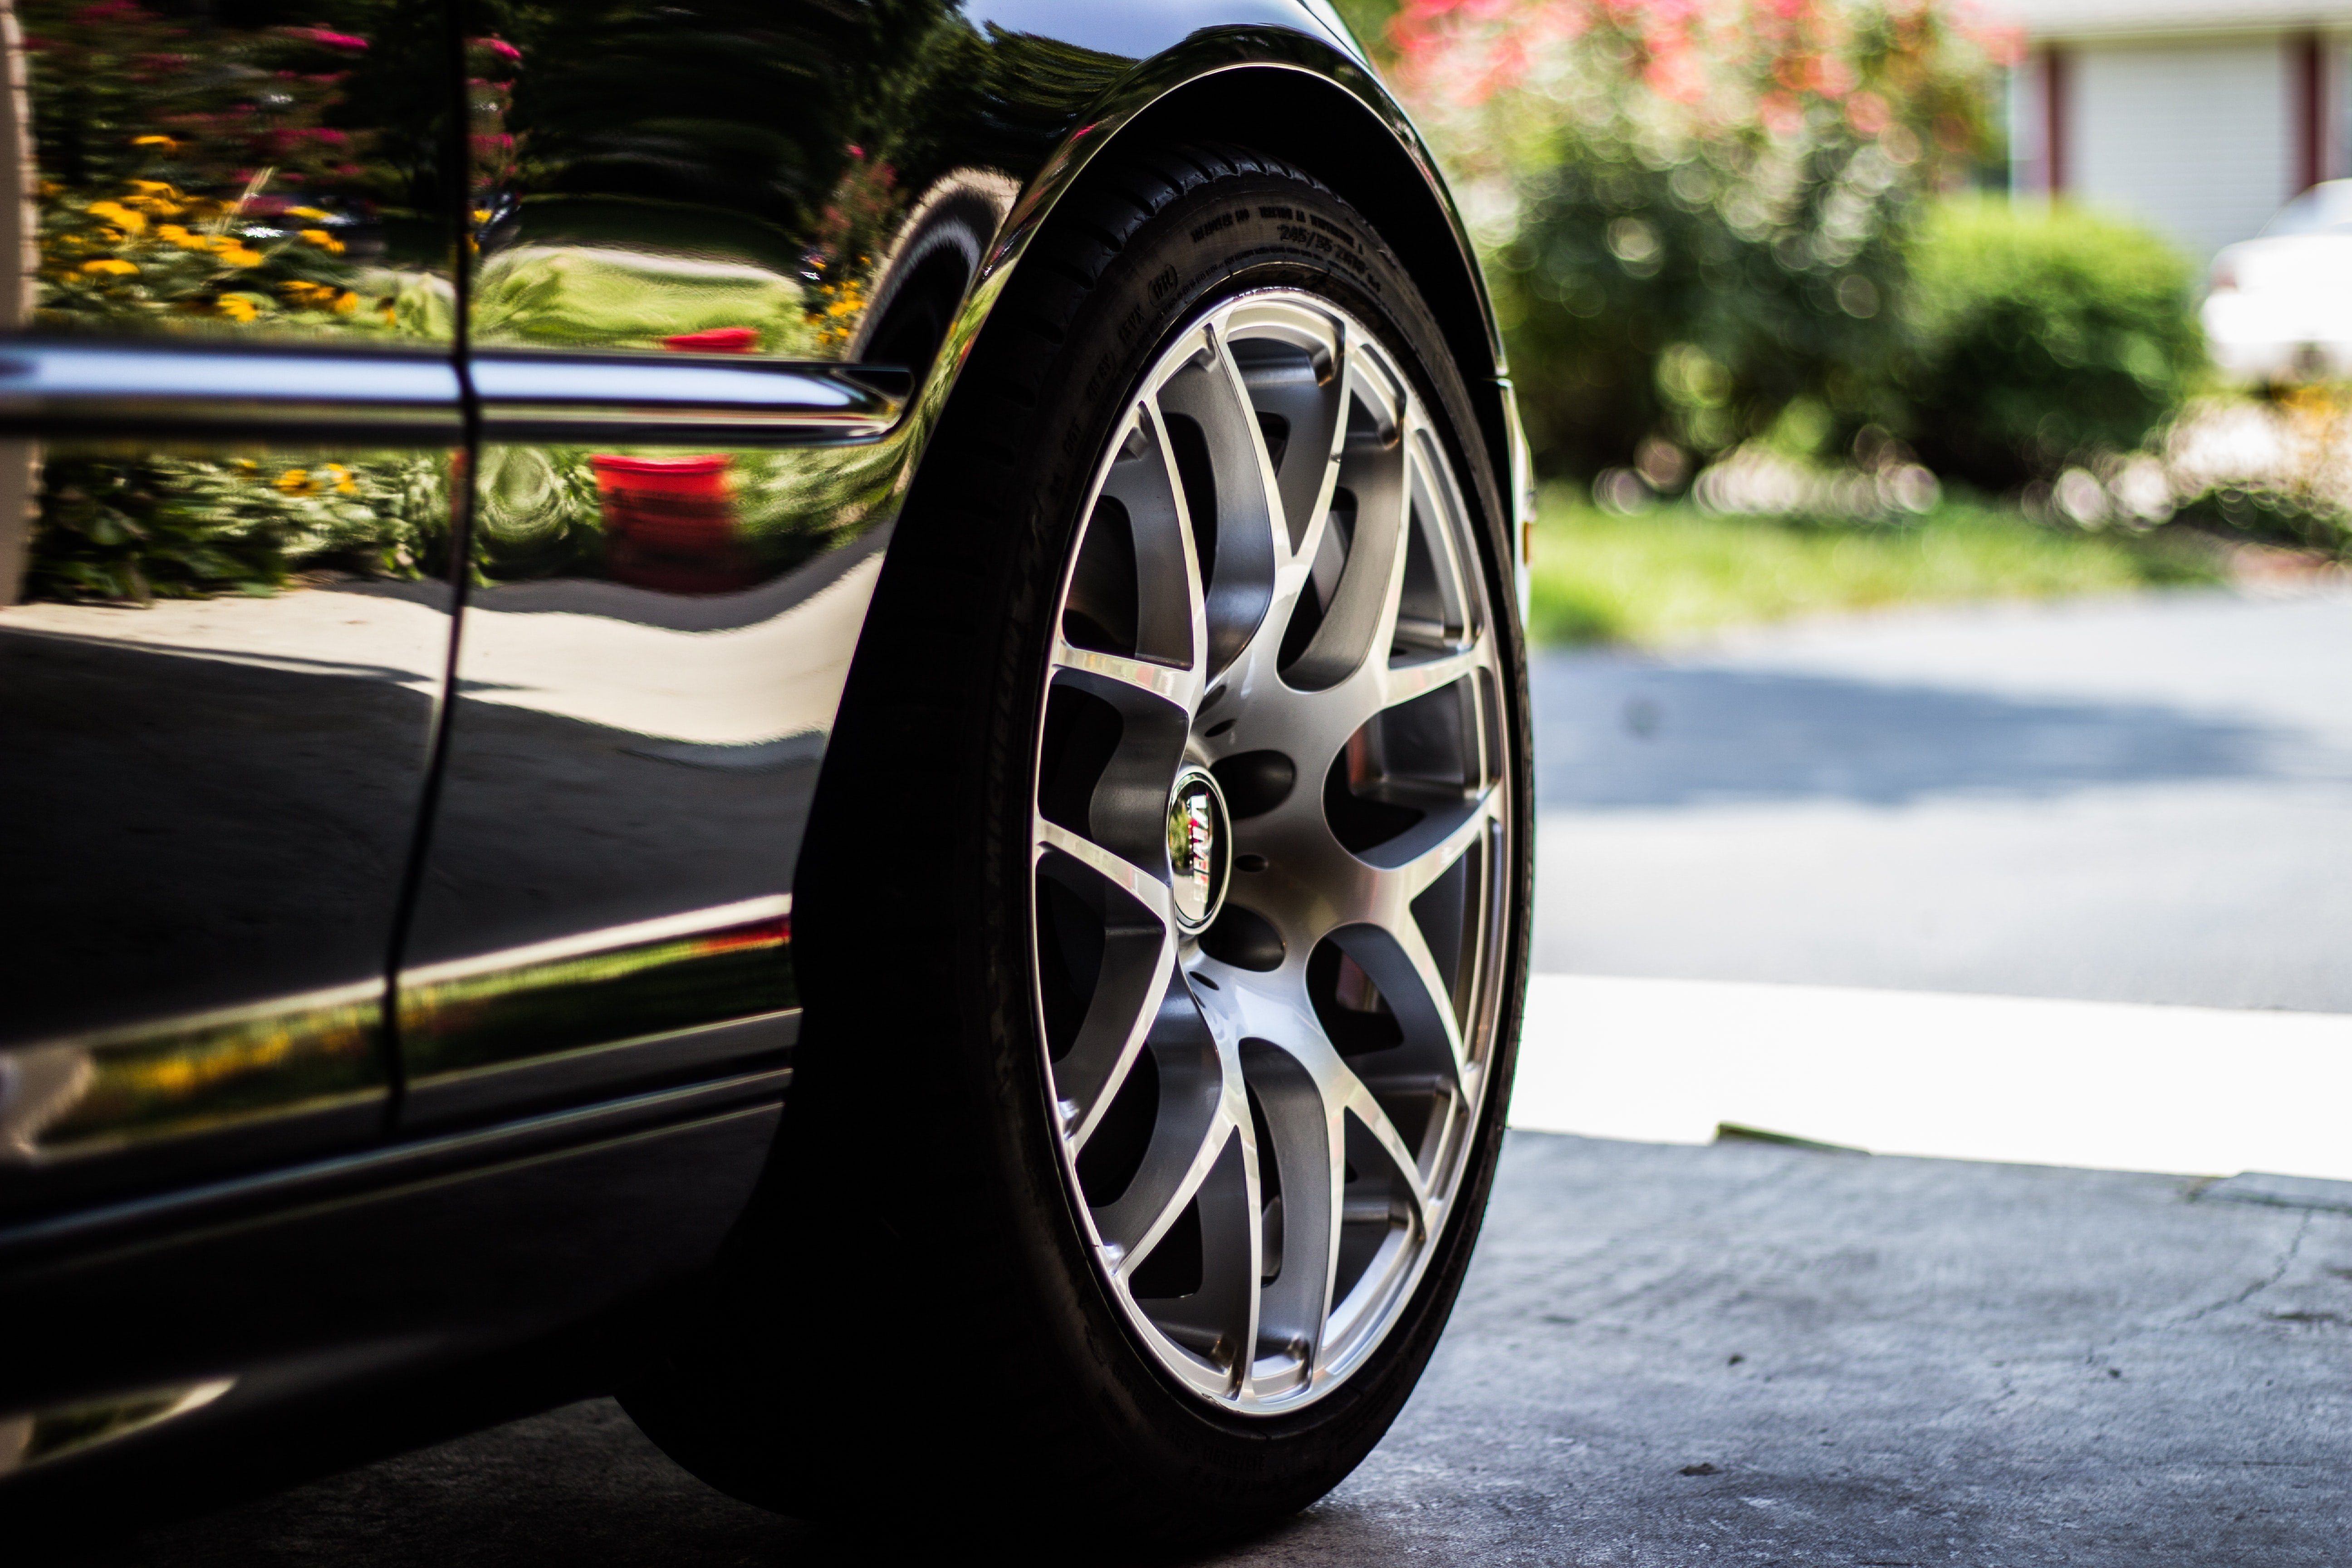 Picture of a car wheel | Source: Unsplash